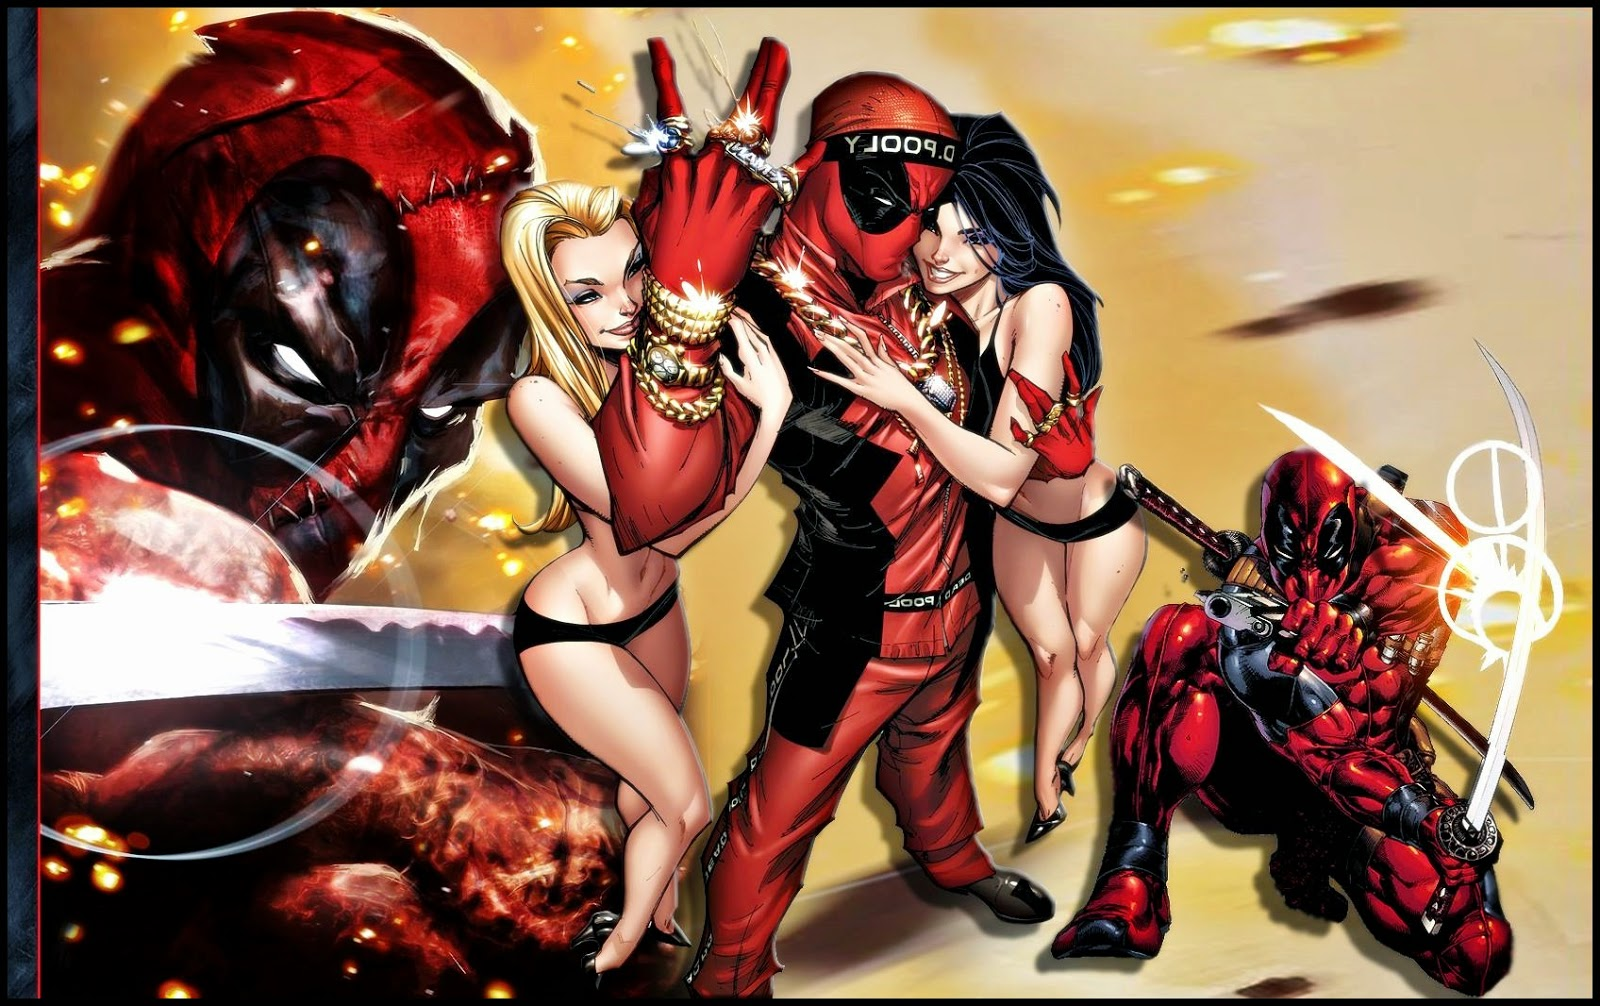 http://historiasnocontadasaun.blogspot.com.es/search/label/Deadpool%20Fan%20Fic